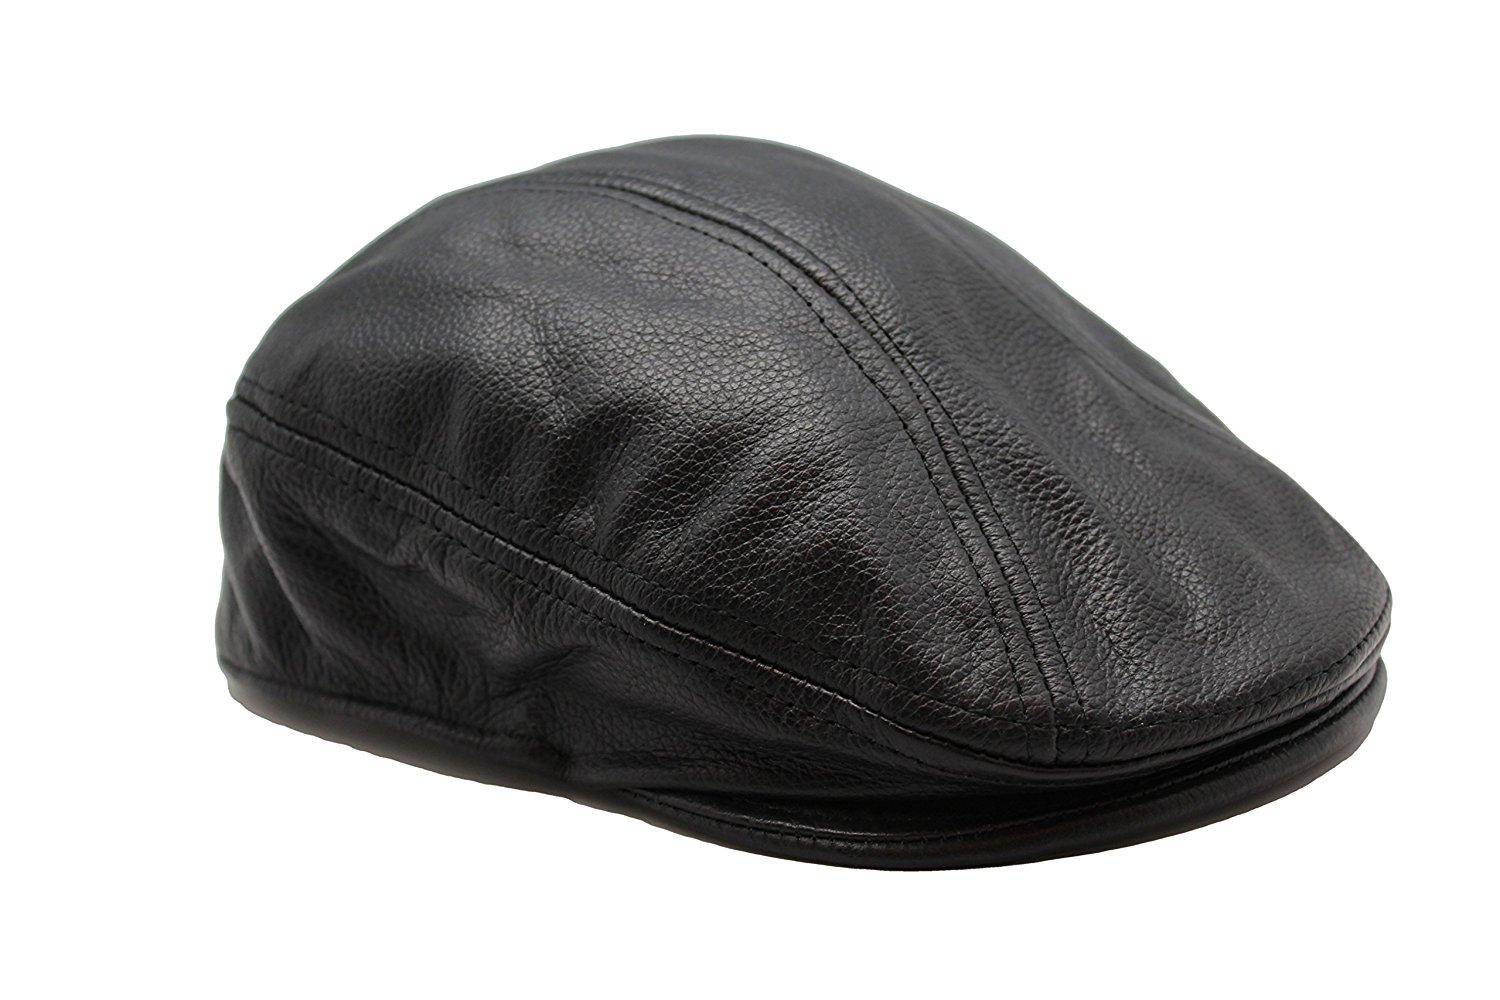 7e05e508b91a8 Genuine Leather Black News boy Gatsby Cabbie Flat Driver Ivy Ascot Hat Cap  JTC